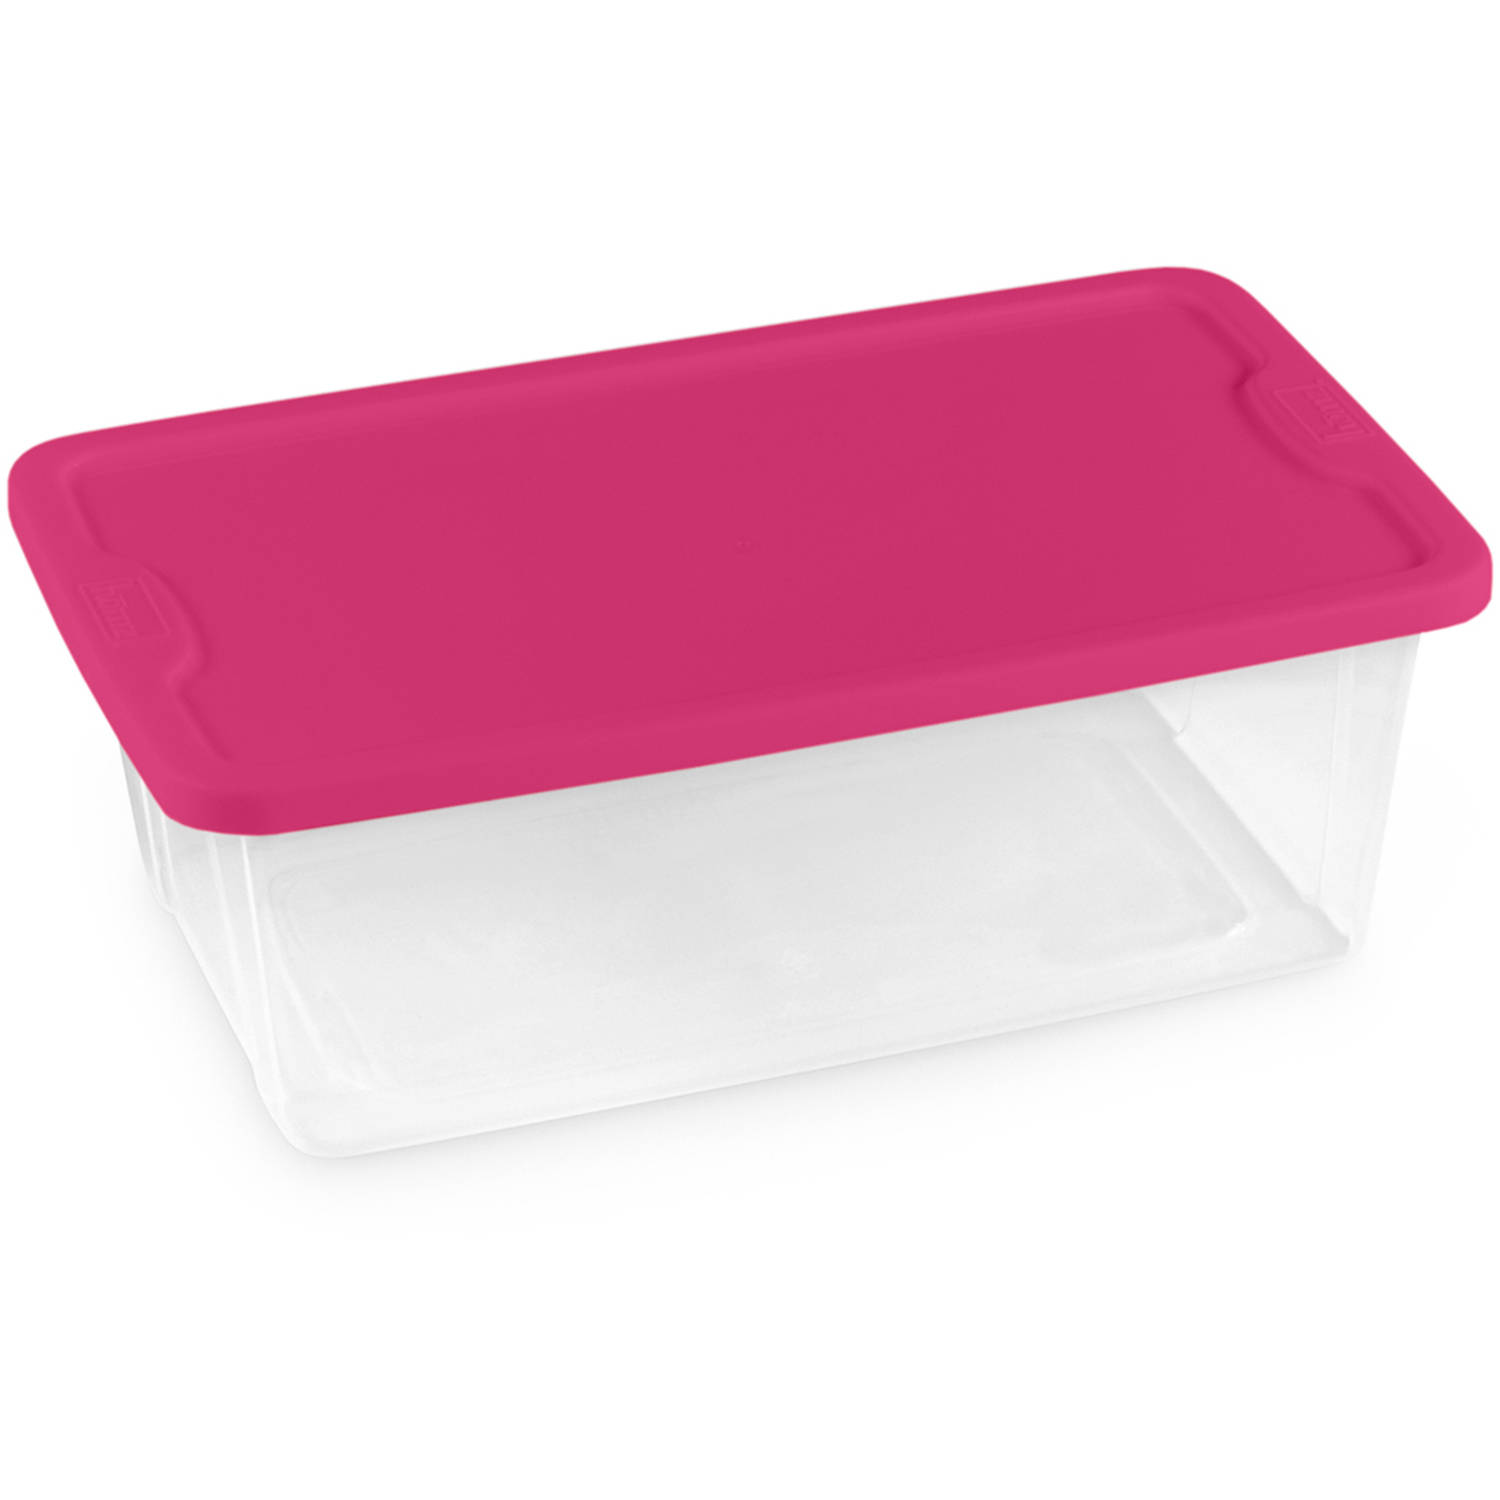 Homz 6 Quart Plastic Storage Container, Clear and Fuchsia Pink